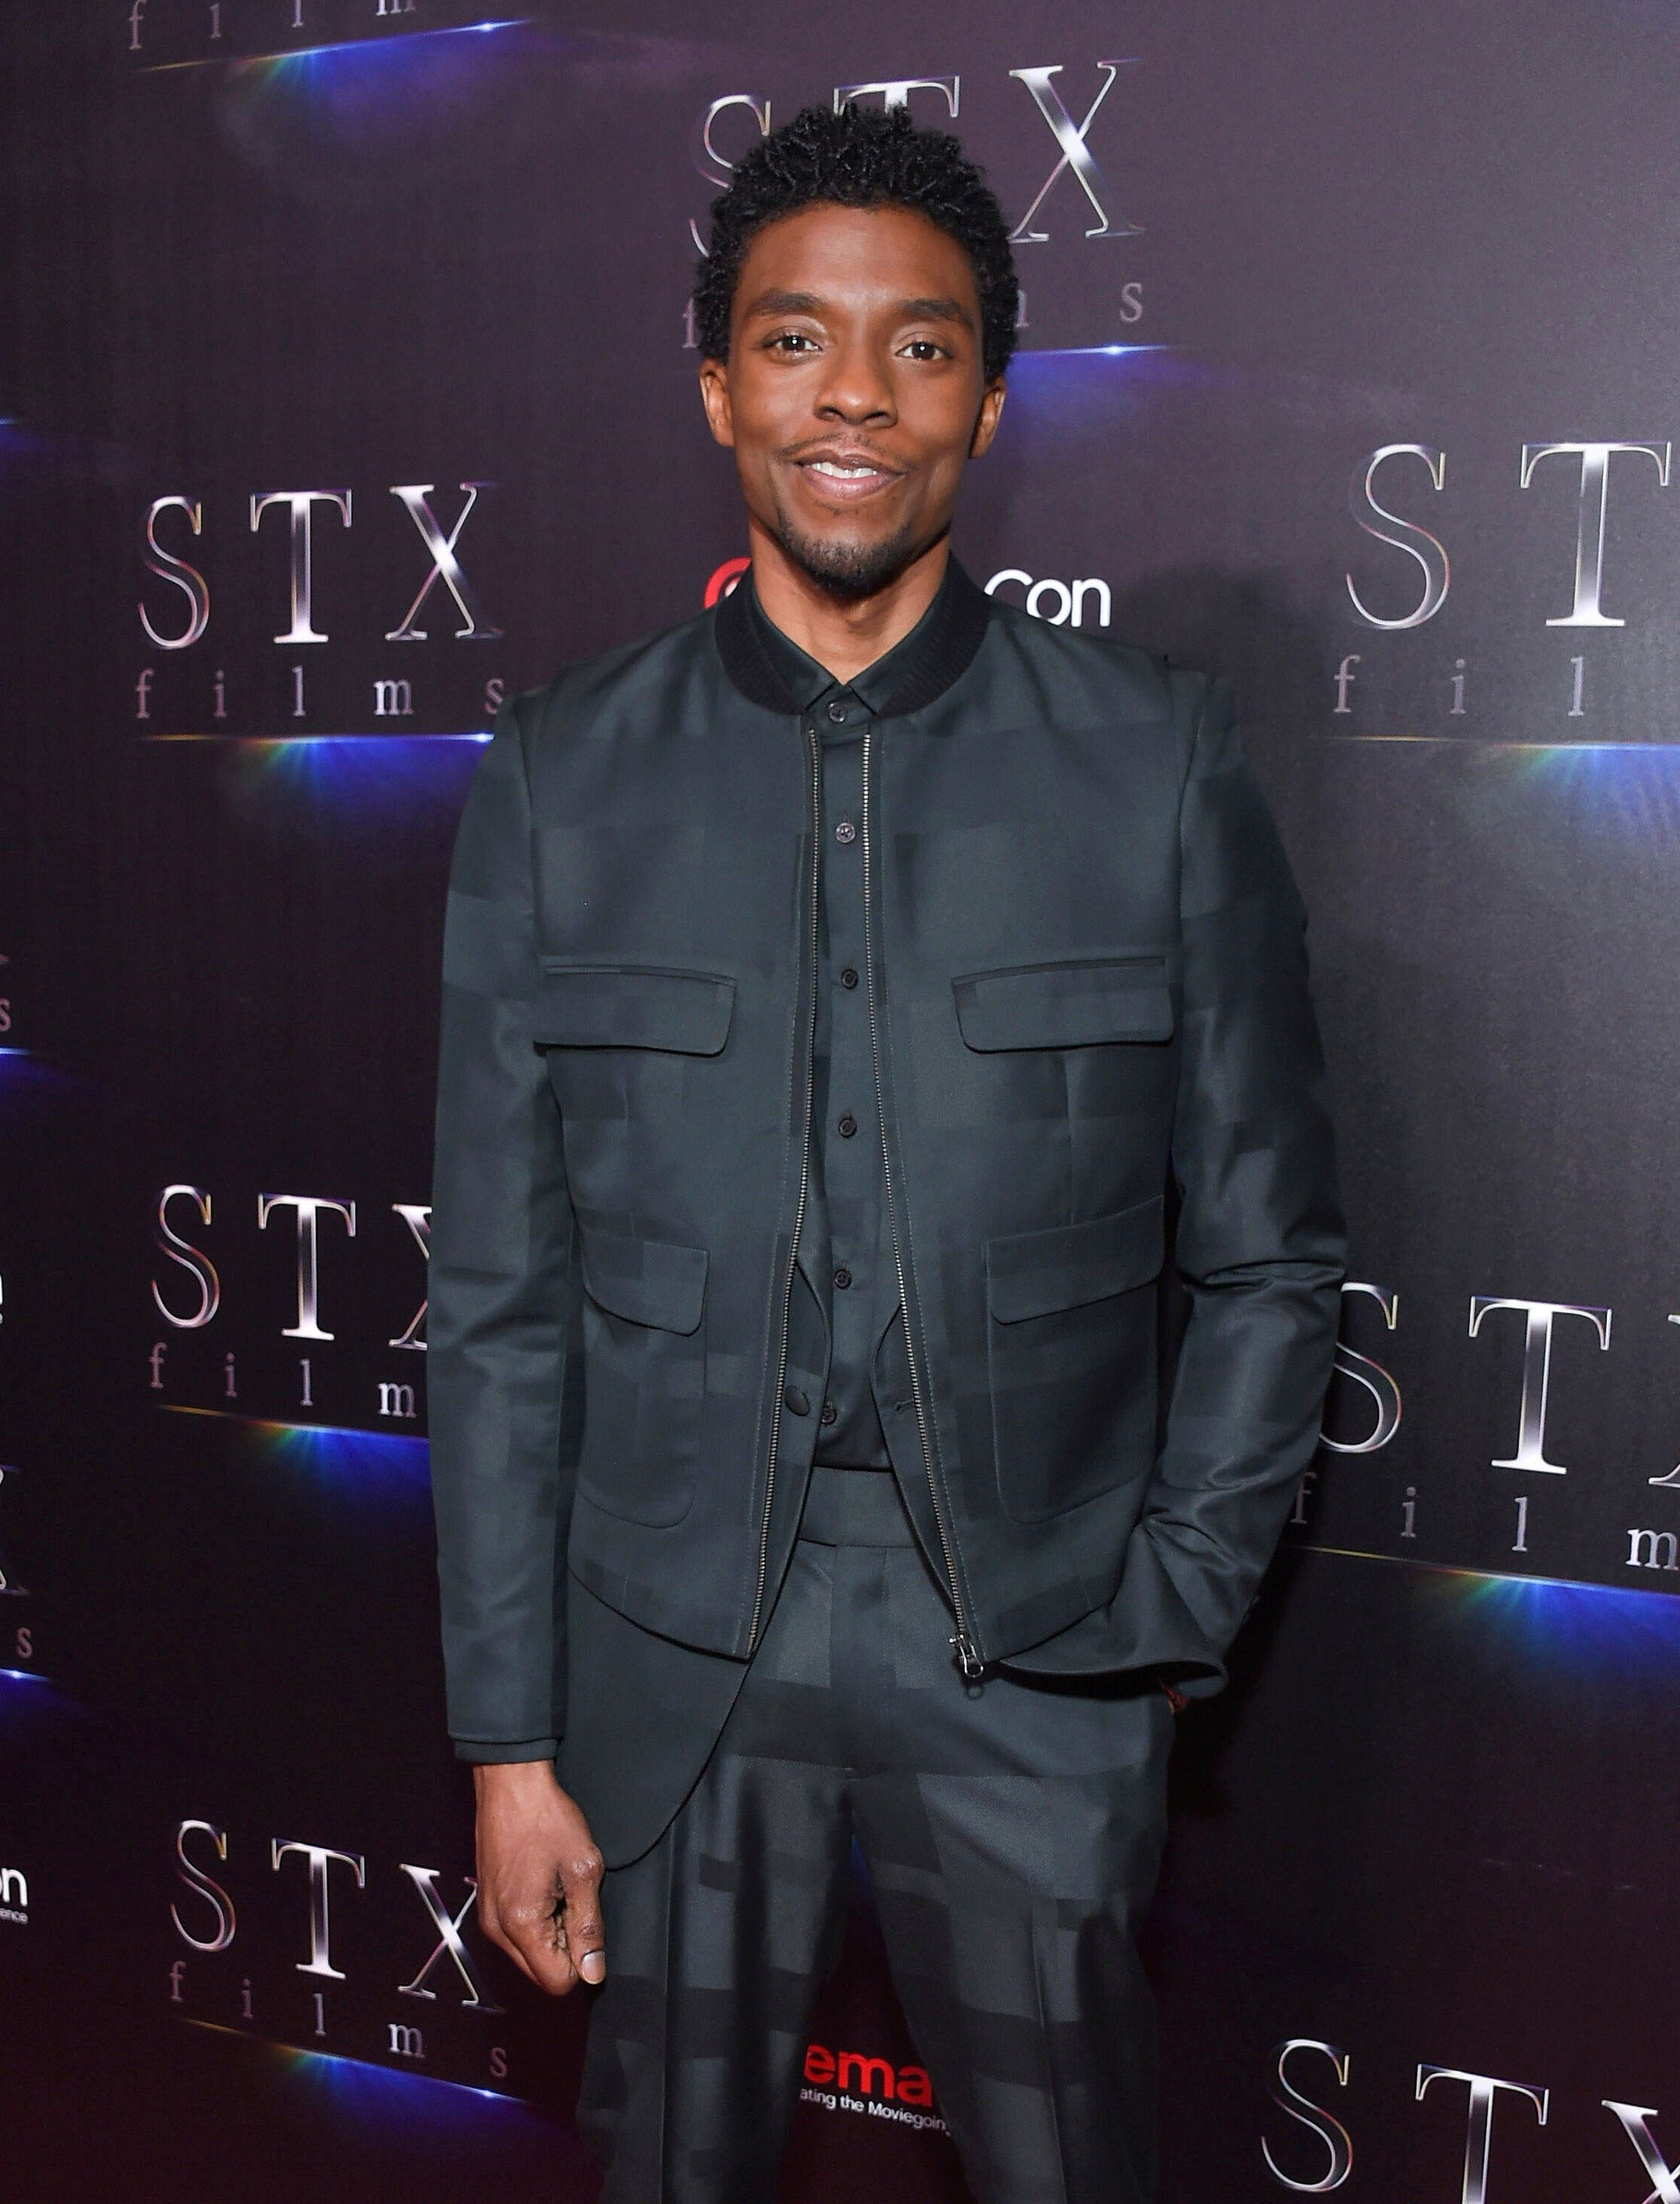 Chadwick Boseman, who was known for his compelling performances as historic Black figures, died at age 43 after a four-year b